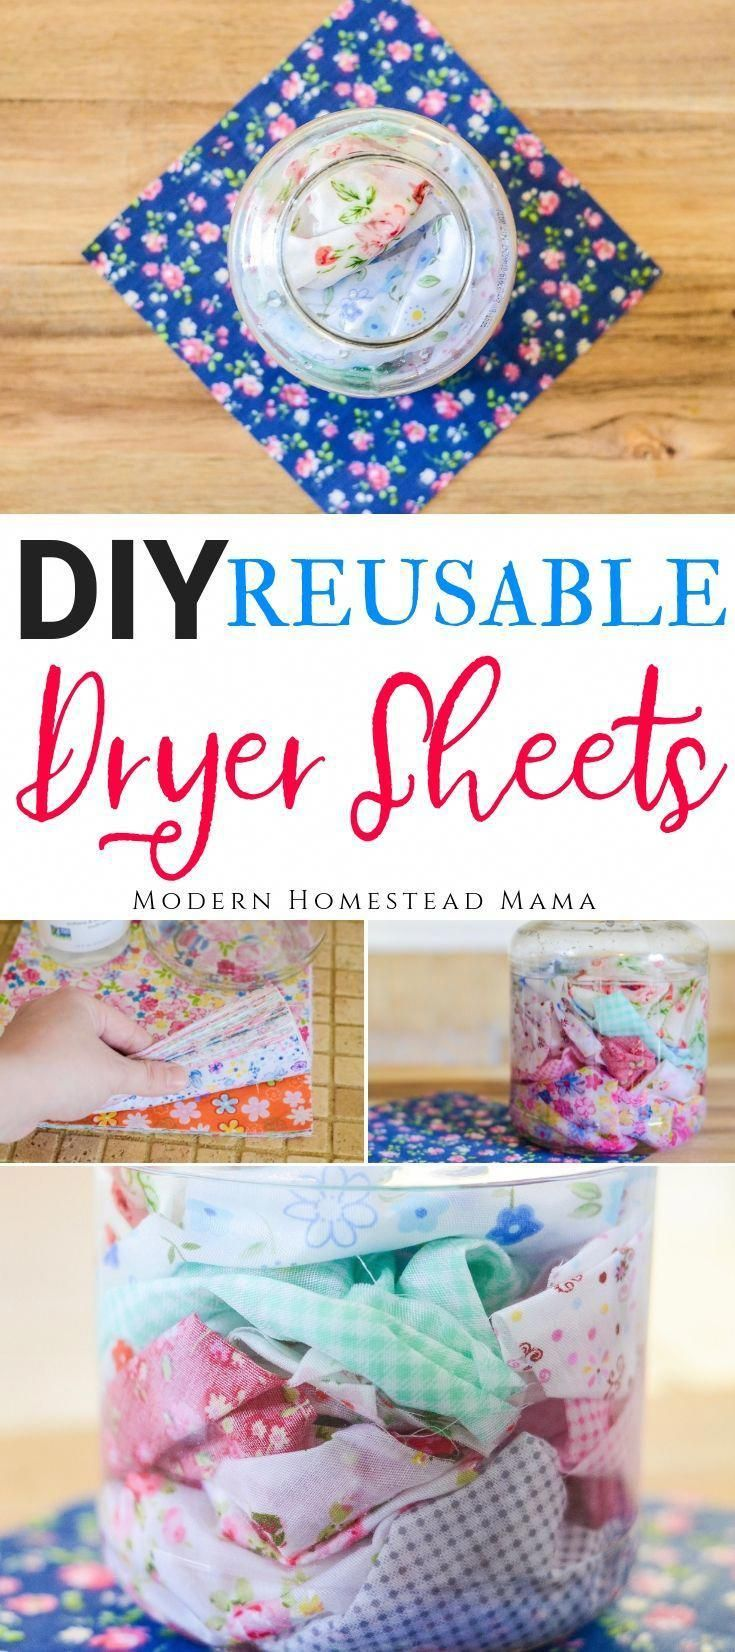 DIY Dryer Sheets - Reusable and Natural. These DIY Dryer Sheets are simple, natural, and safe for se...